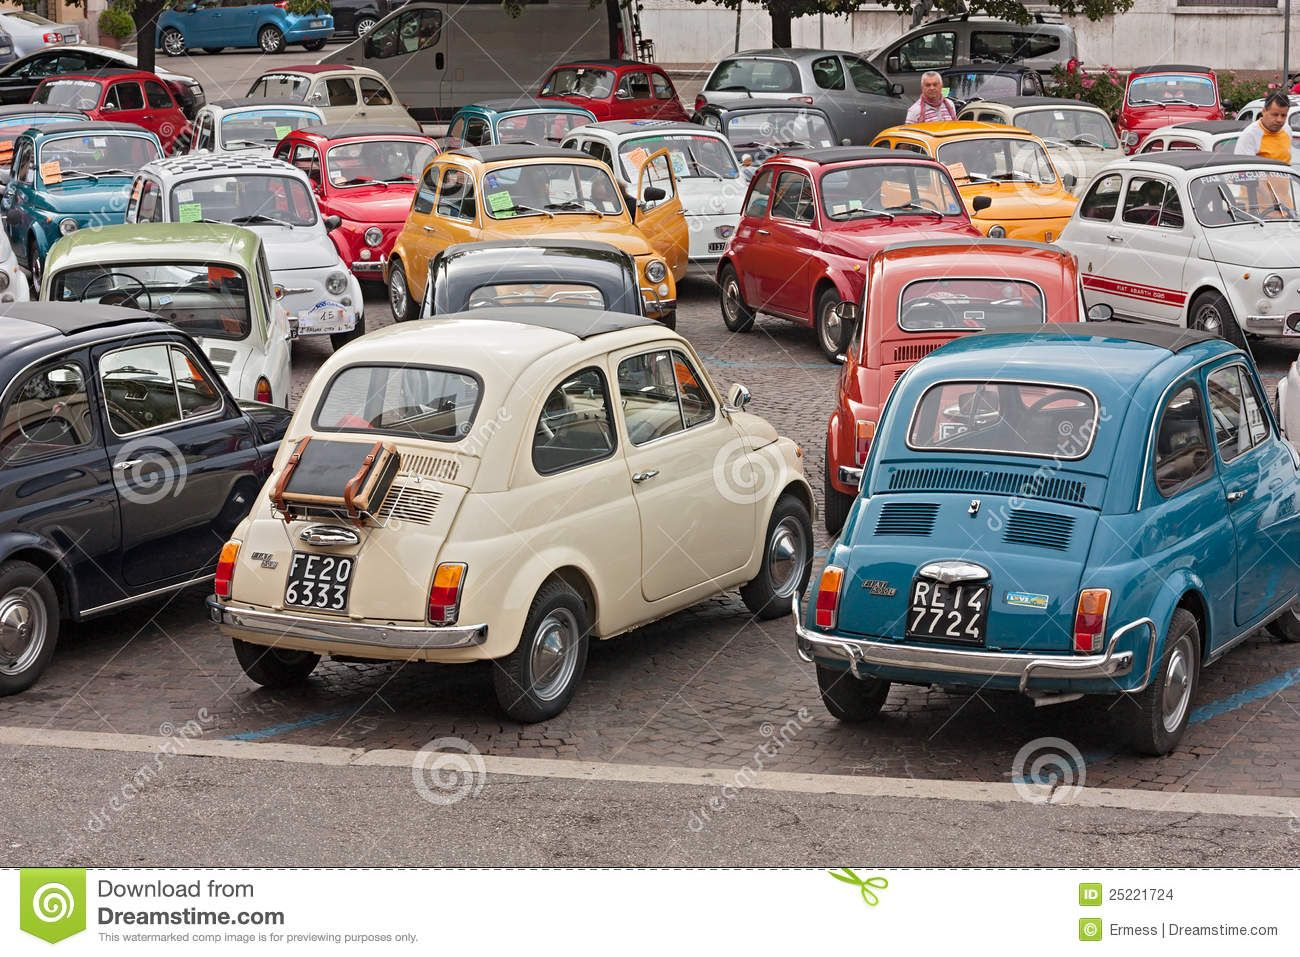 Pin by laszlo sedon on fiat 500 | Pinterest | Fiat and Cars